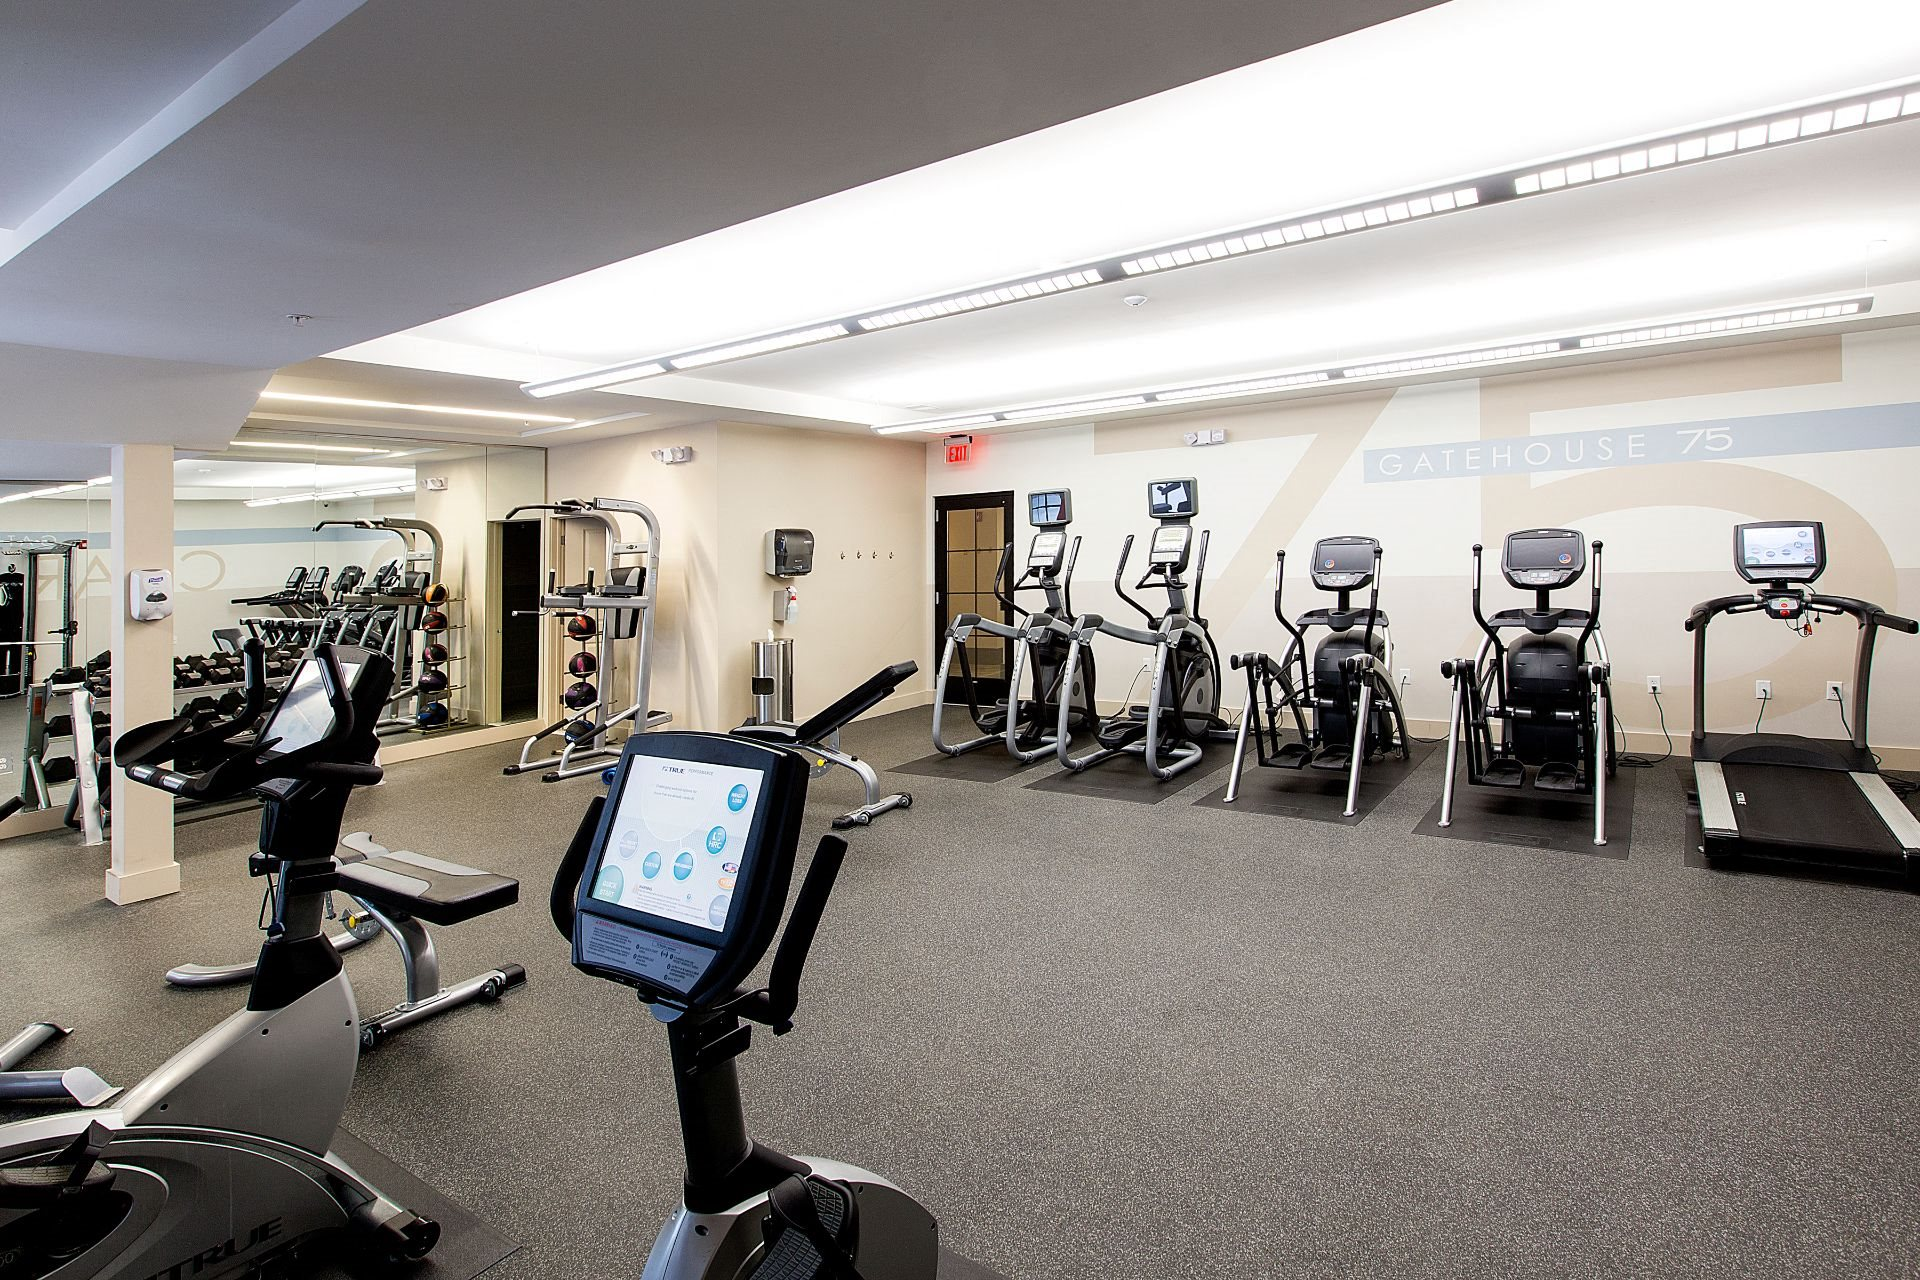 Fitness and Cardio Center with Treadmills at Gatehouse 75, Charlestown, MA, 02129